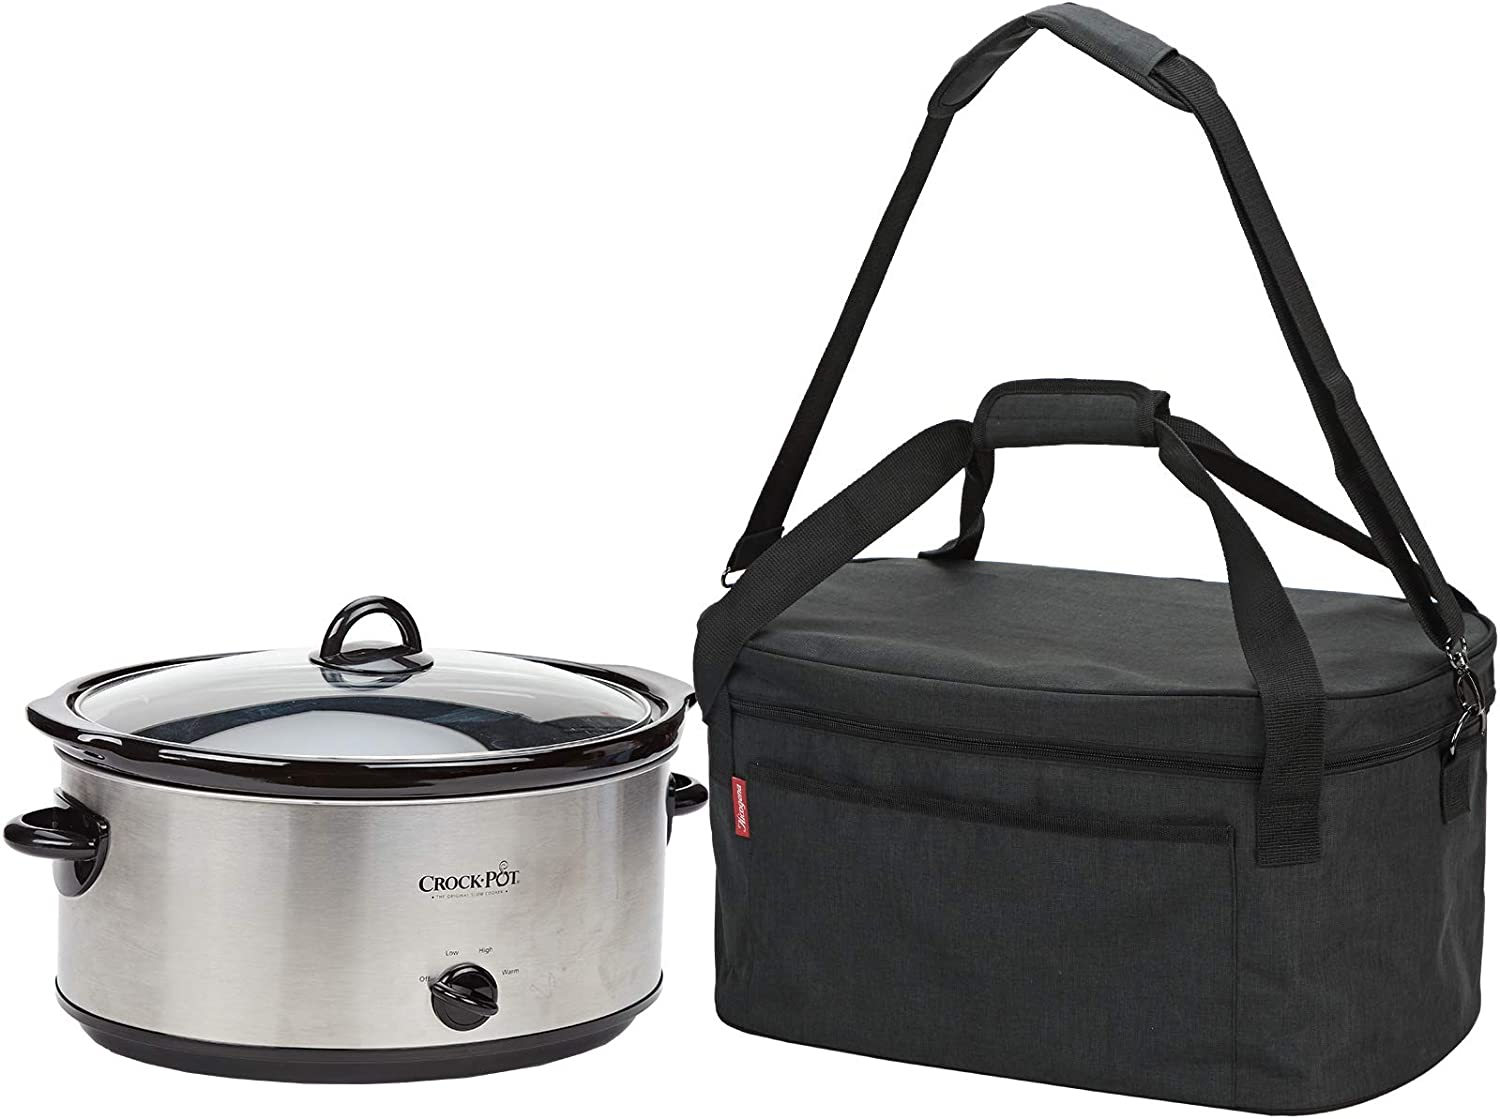 NICOGENA Lightweight Slow Cooker Carrying Bag With Easy to Clean Lining and Large Pocket for Accessories, Compatible with Crock Pot 6-8 Quart, Black